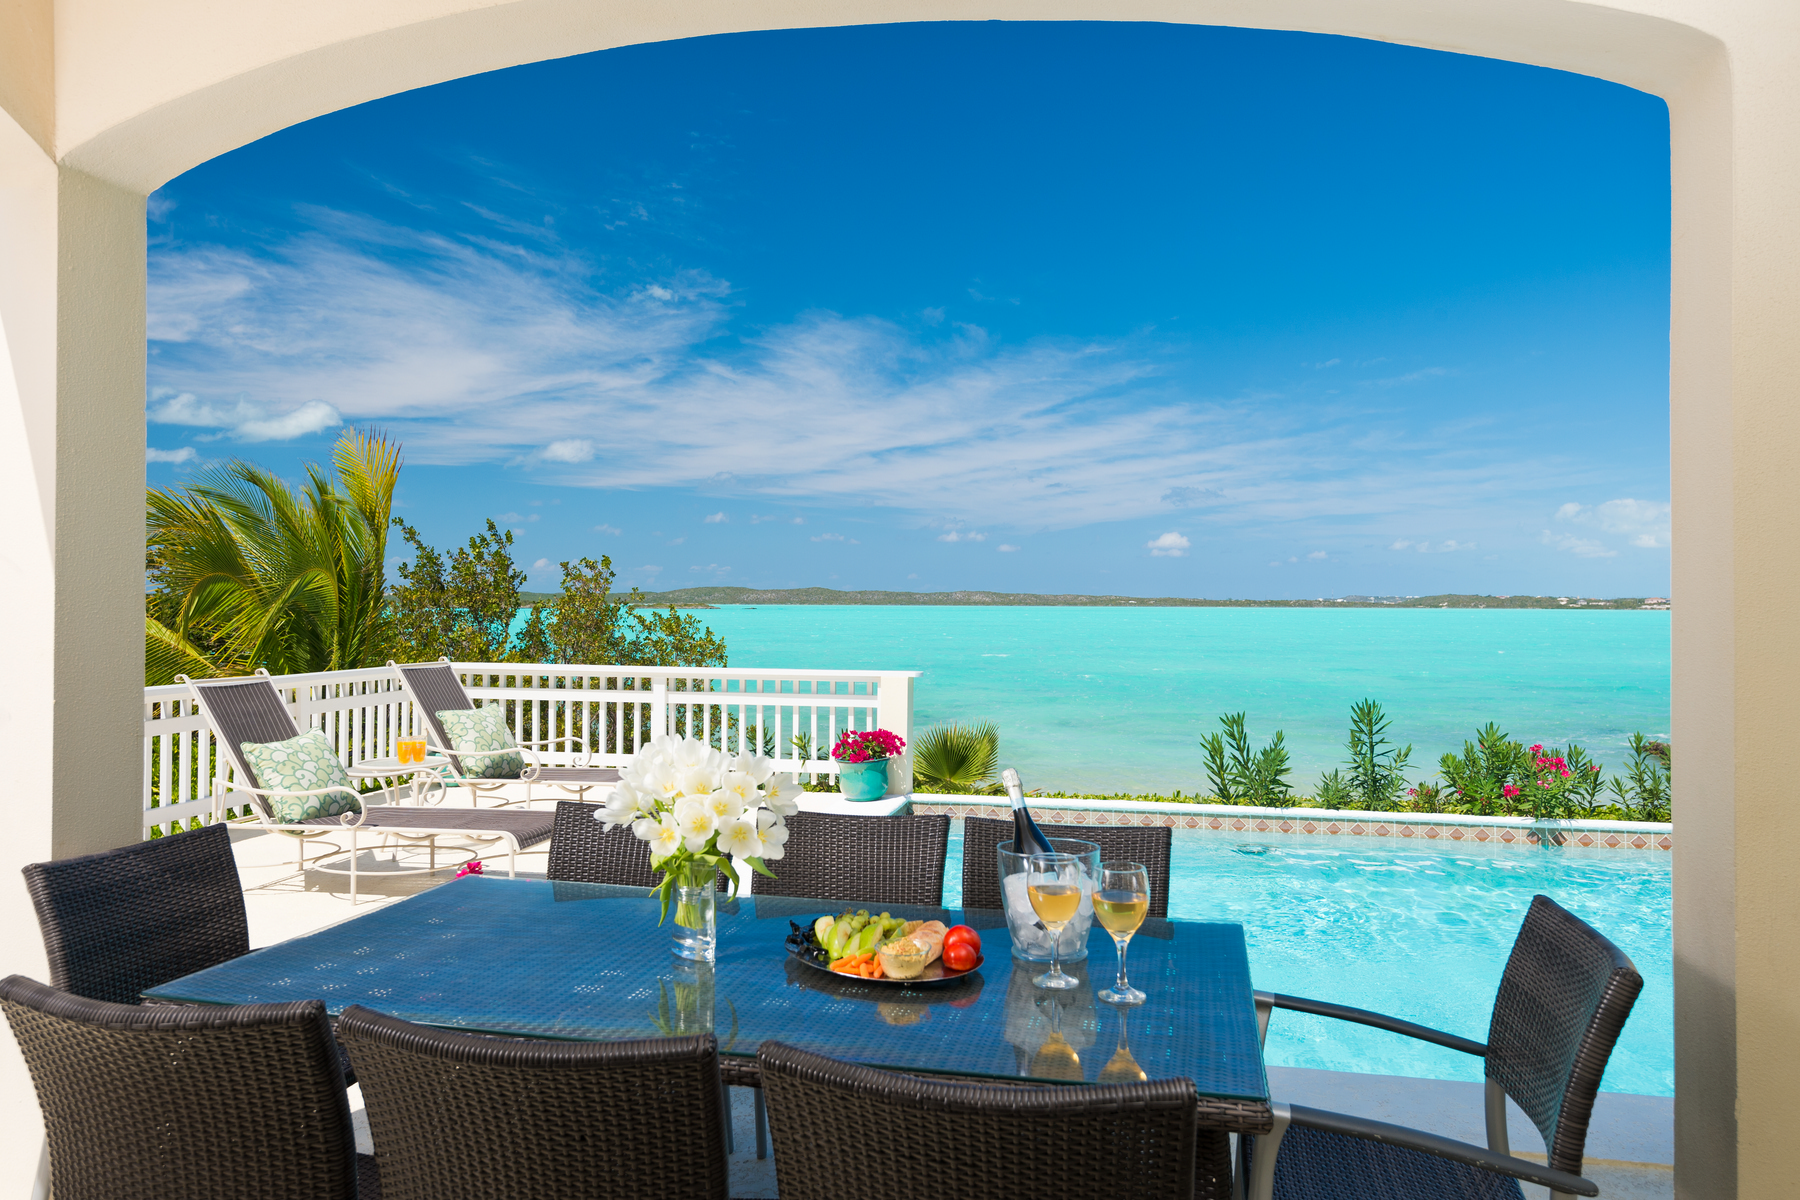 Single Family Home for Sale at BRIGHT IDEA VILLA Oceanfront, Chalk Sound, Providenciales, TKCA 1ZZ Turks And Caicos Islands